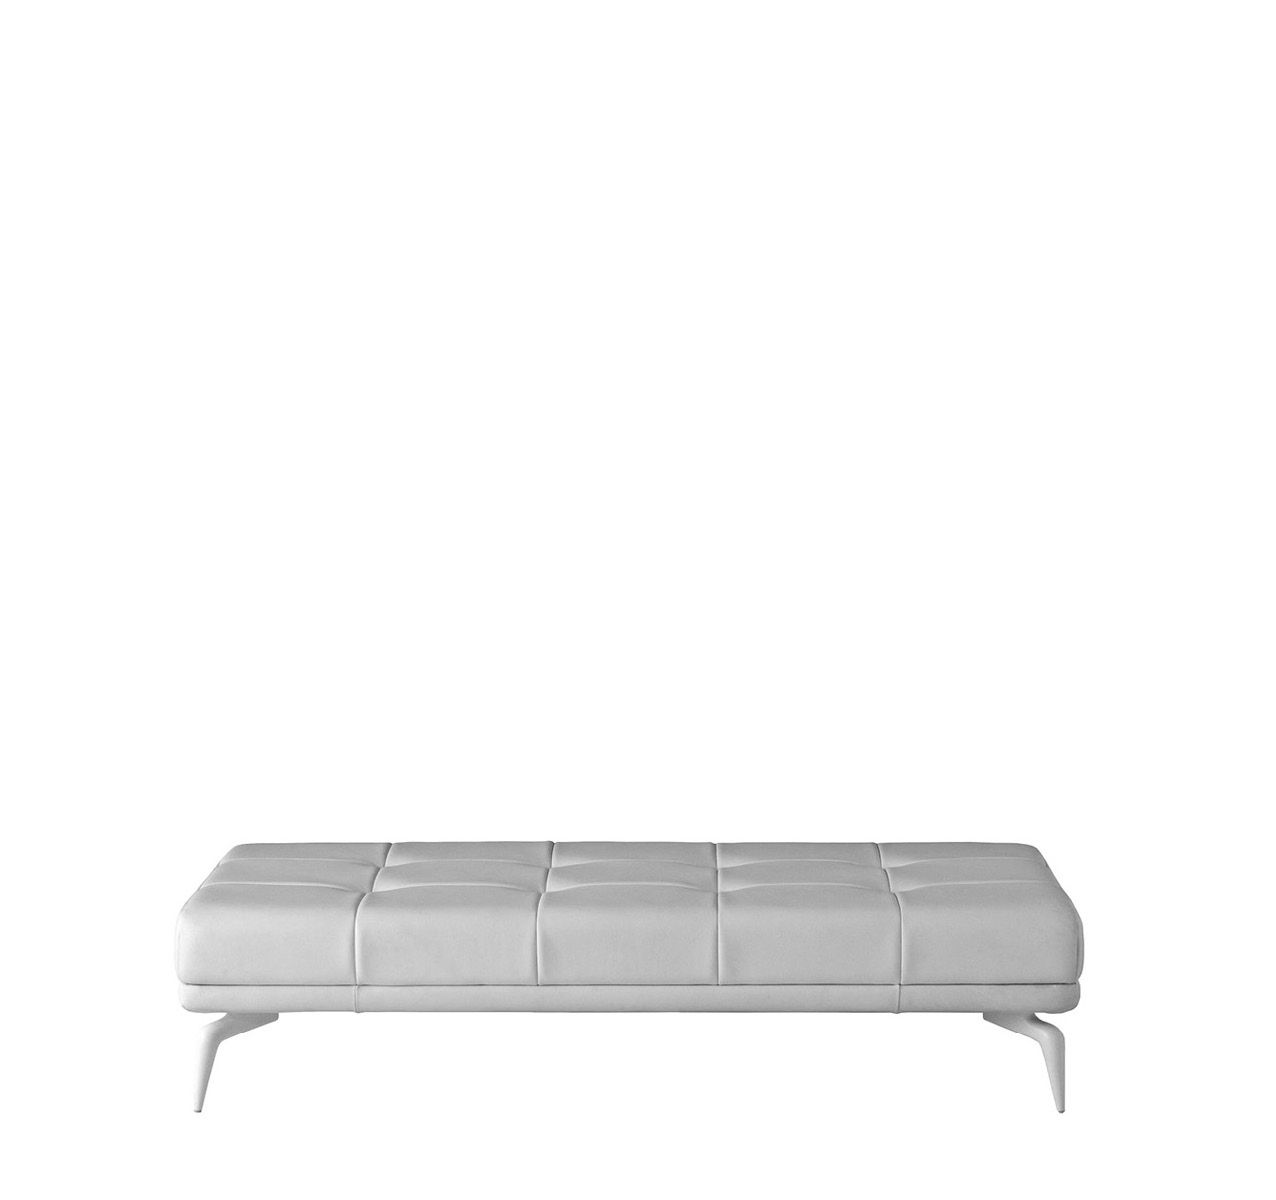 Leeon Bench Cairo - Bianco 01